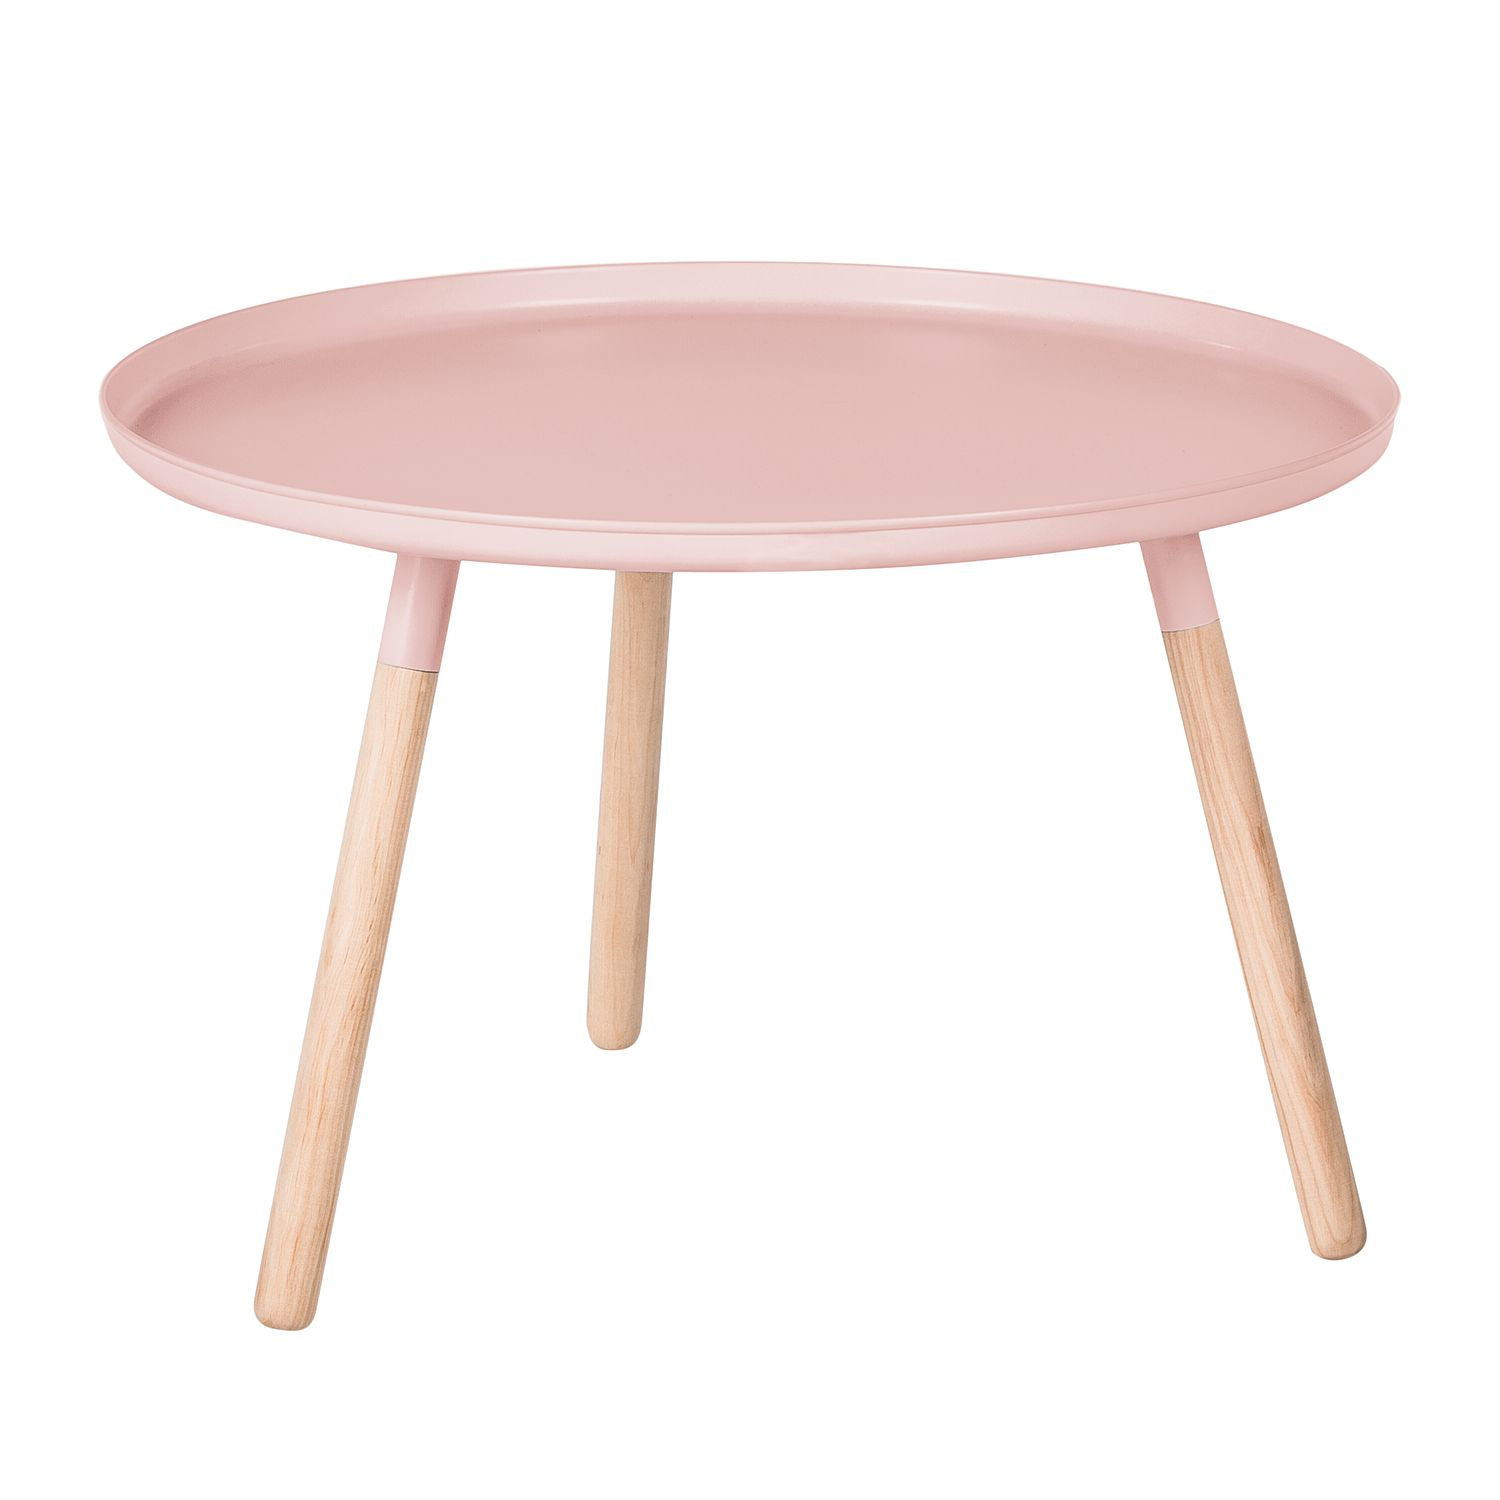 Table d'appoint Mika III - Mauve, kollected by Johanna